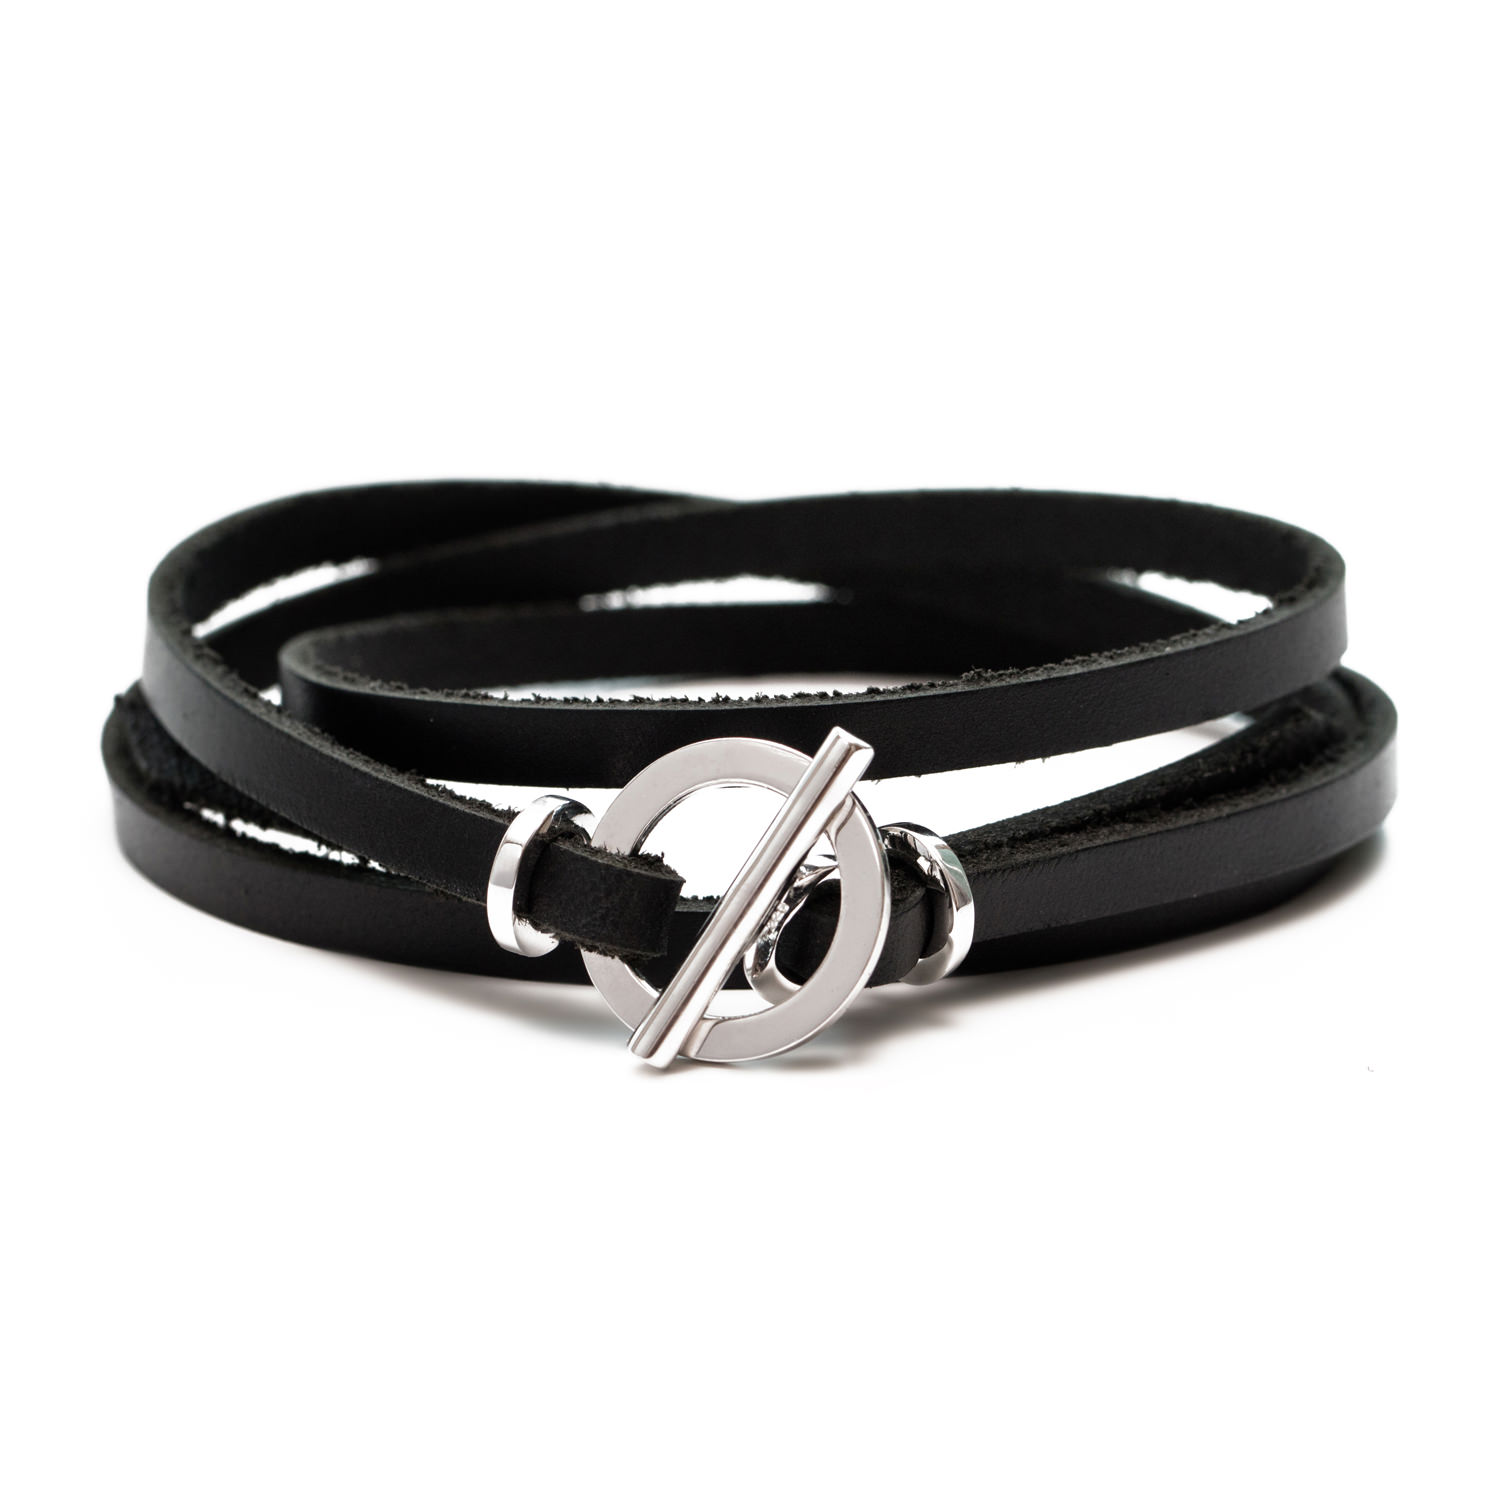 Details About Silver 925 Leather Bracelet For Woman Wrap With Toggle Clasp